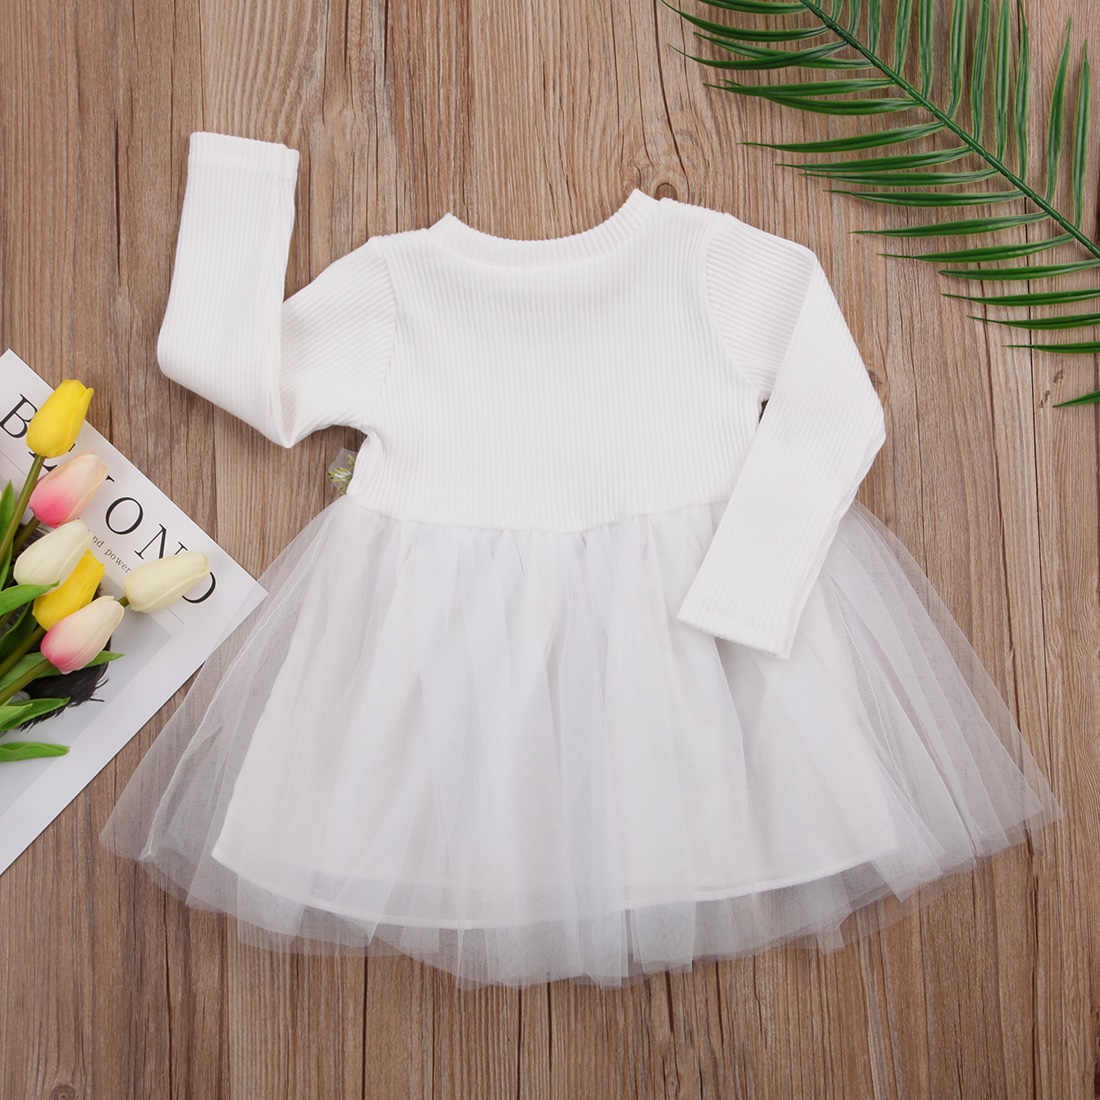 3-24M Princess Newborn Infant Baby Girls Dress Lace Flower Tutu Tulle Party Dresses For Baby Girls Birthday Baby Costumes Autumn